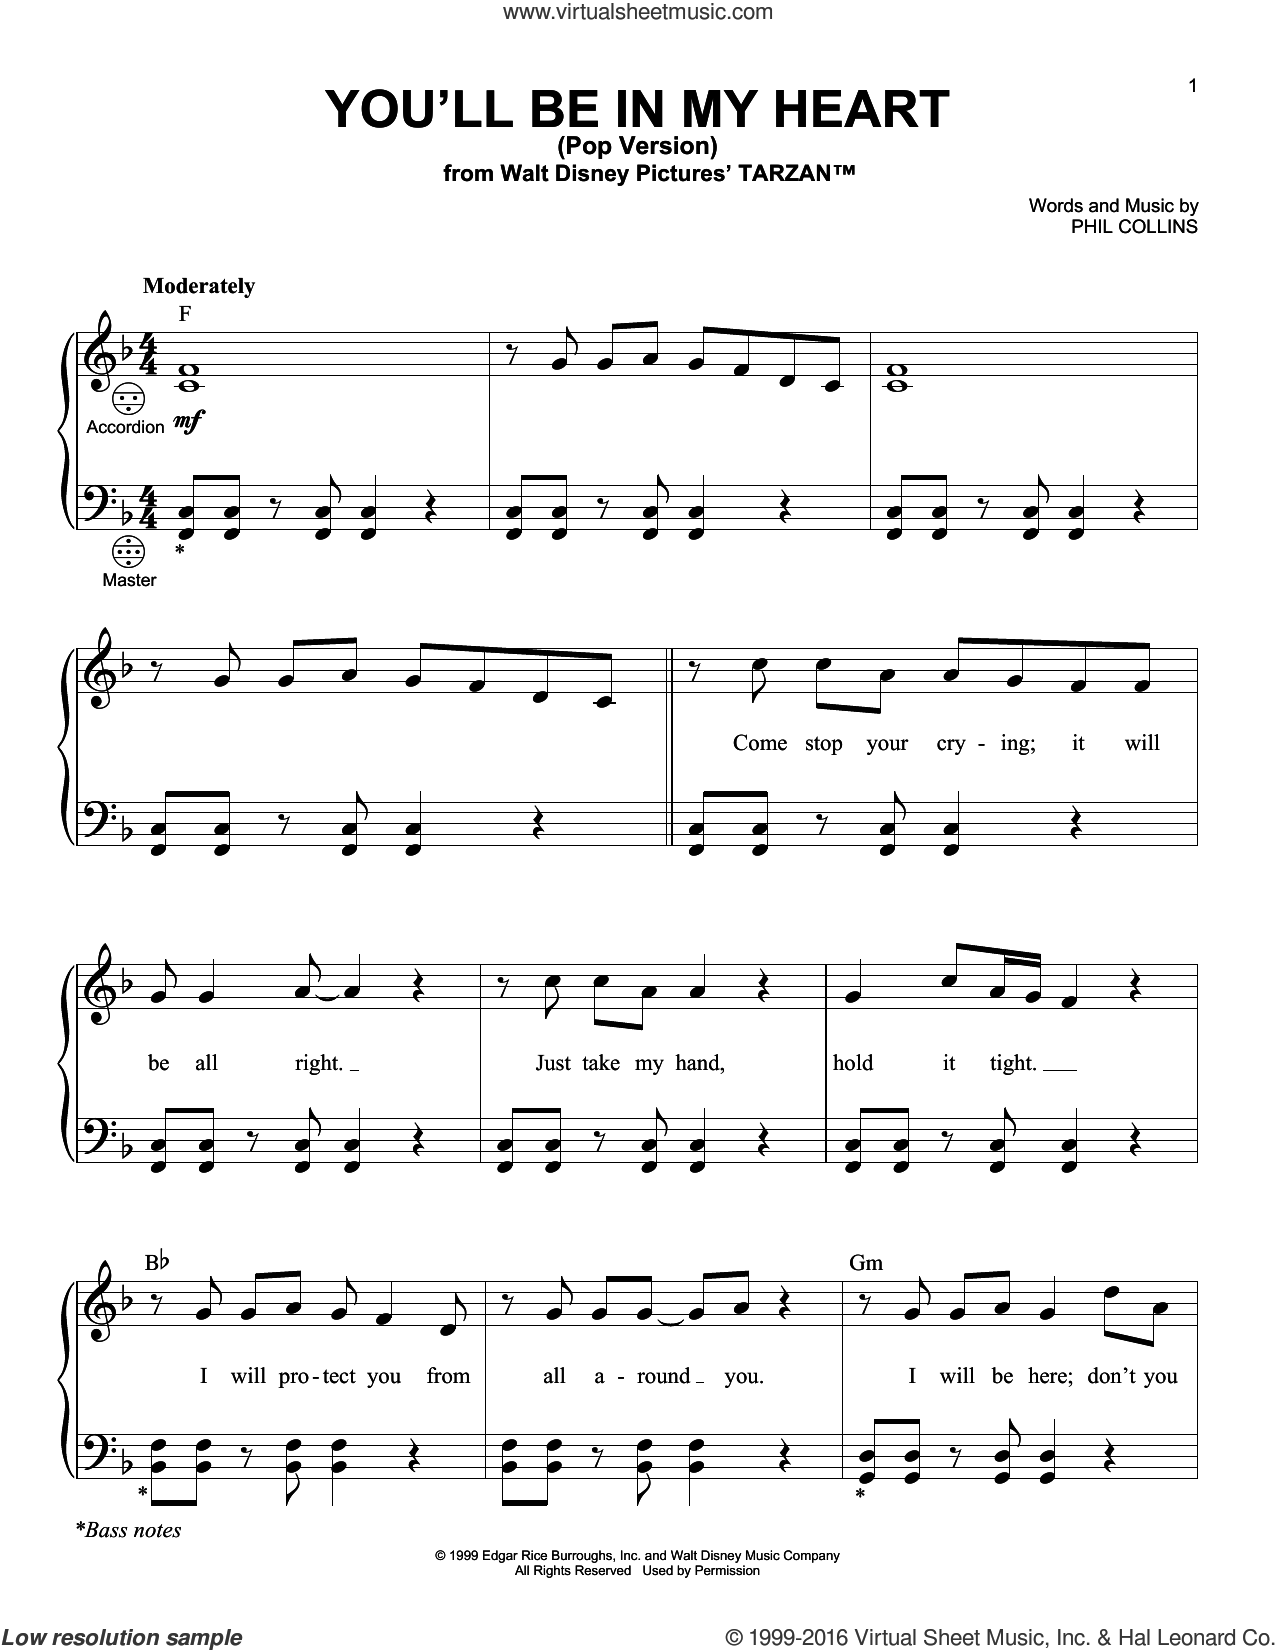 You'll Be In My Heart (Pop Version) sheet music for accordion by Phil Collins. Score Image Preview.